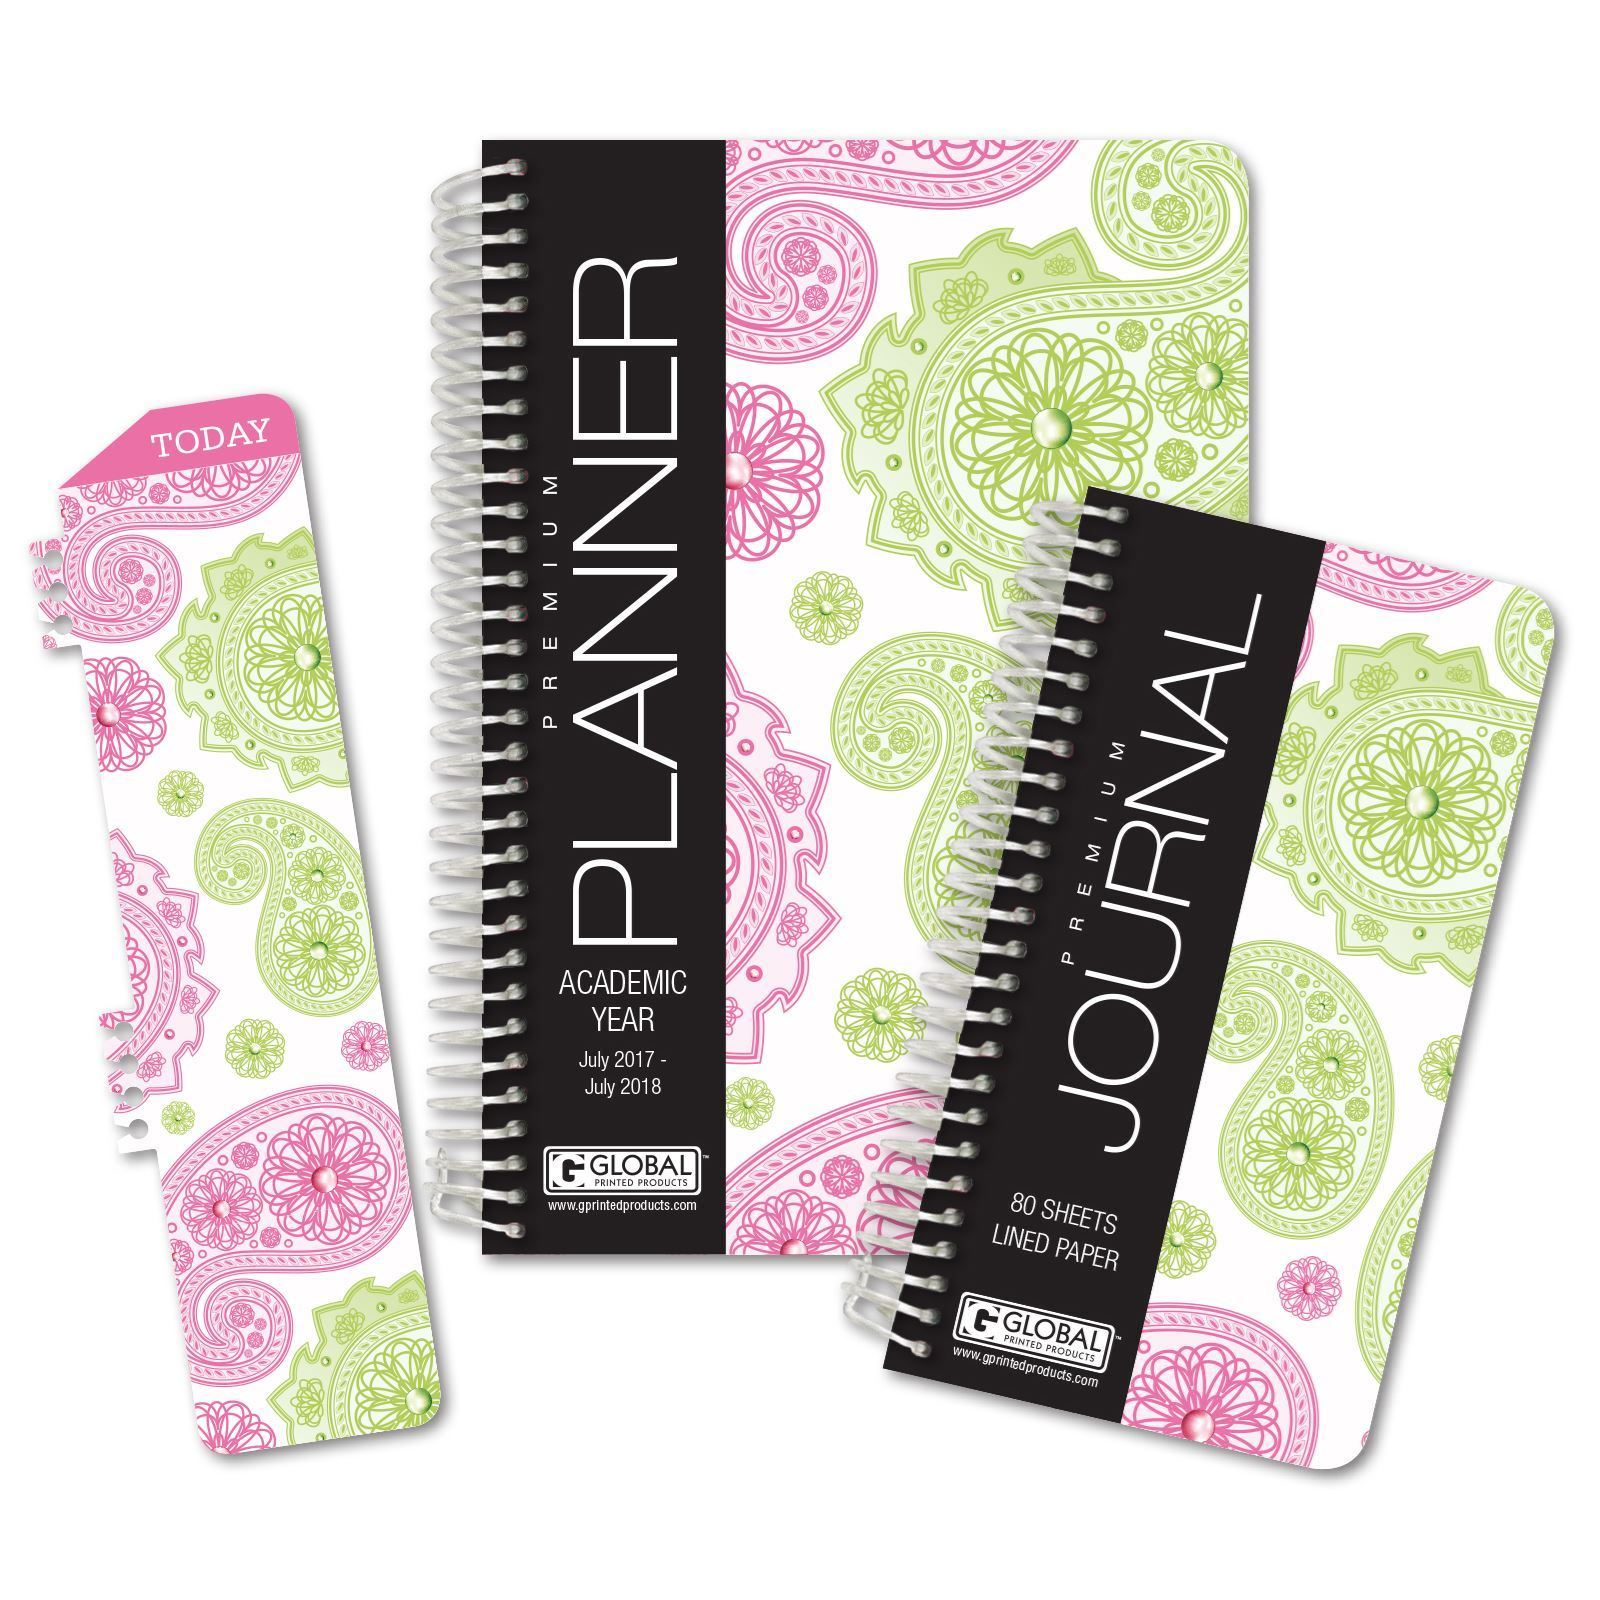 Picture of Academic Year Fashion Planner Daily Set (Paisley Pattern)